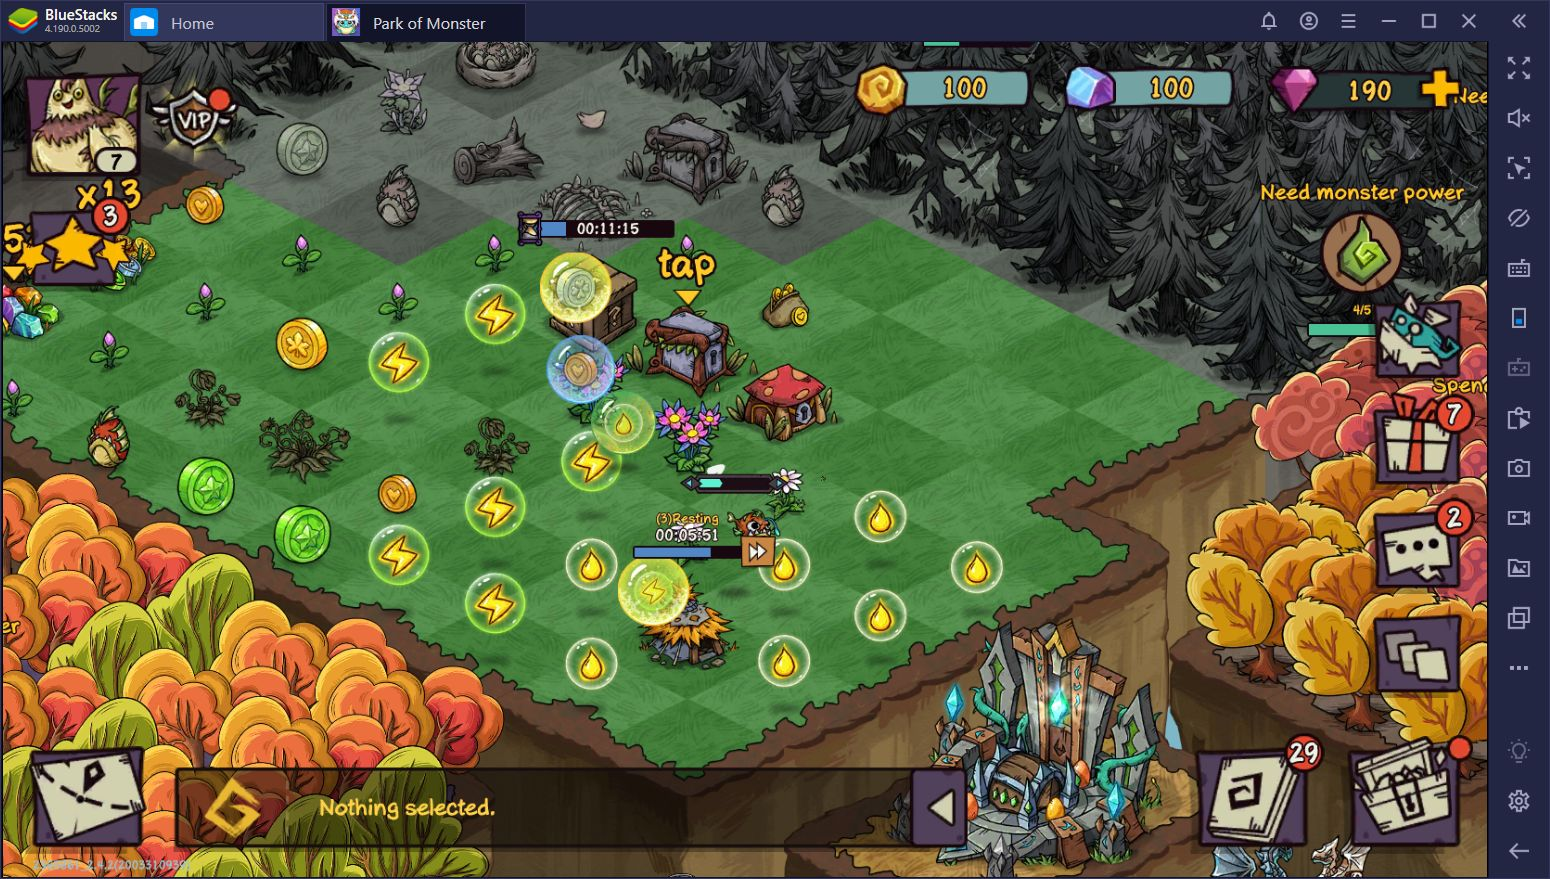 Park of Monster - Beginner's Guide for This Awesome Match 3 Game